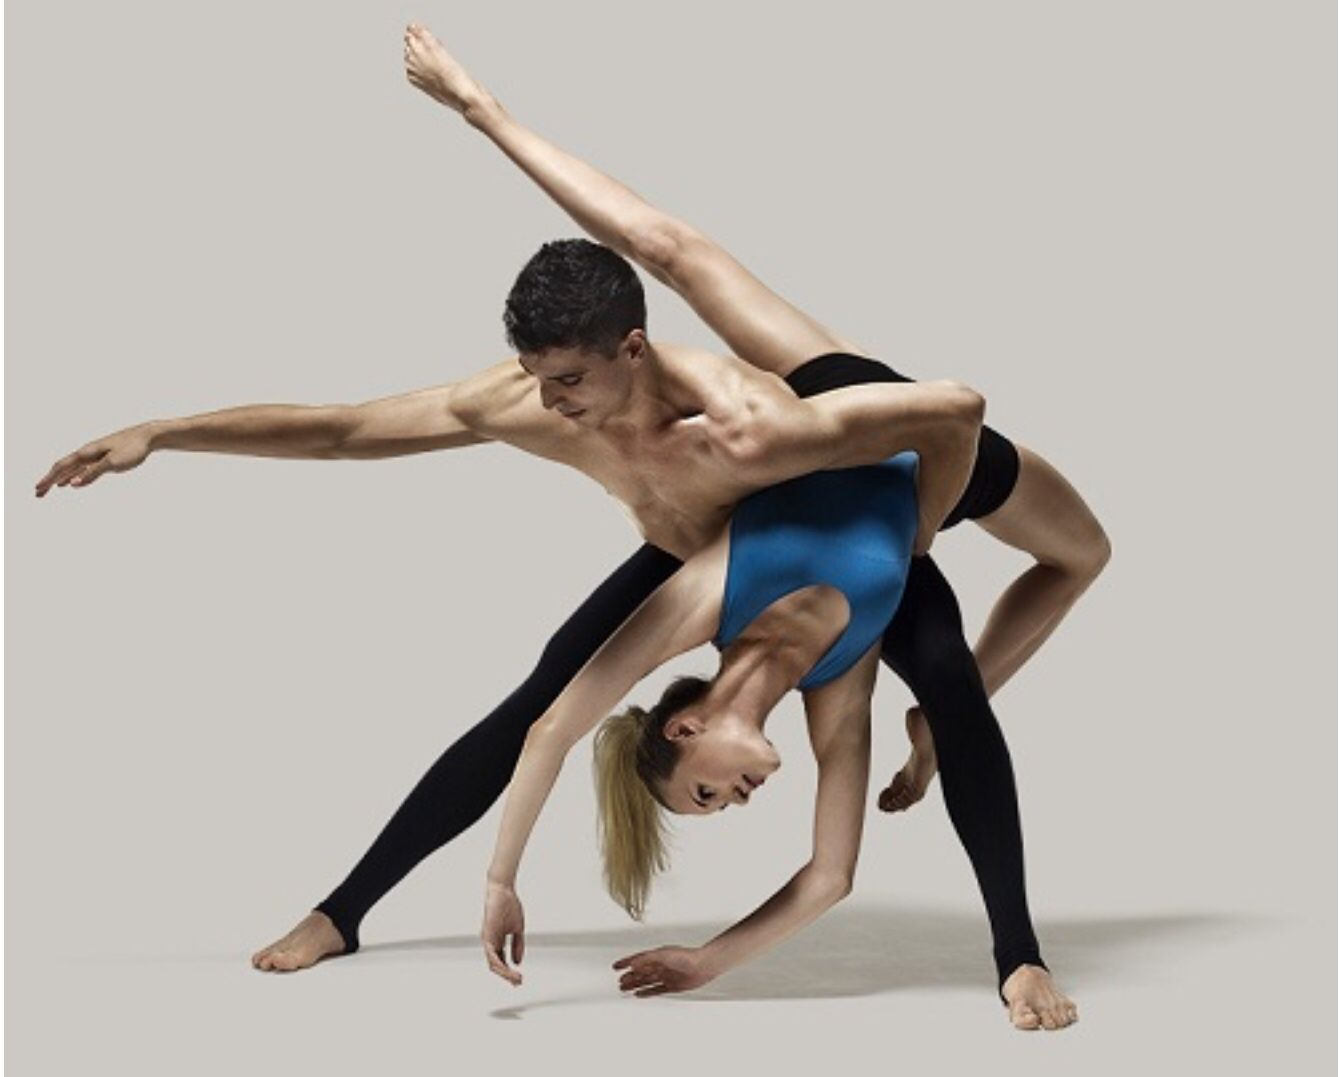 is dance a sport essay An evaluation of dance as a hard working sport pages 7 words 1,725 view full essay  wow most helpful essay resource ever - chris stochs, student @ uc berkeley.